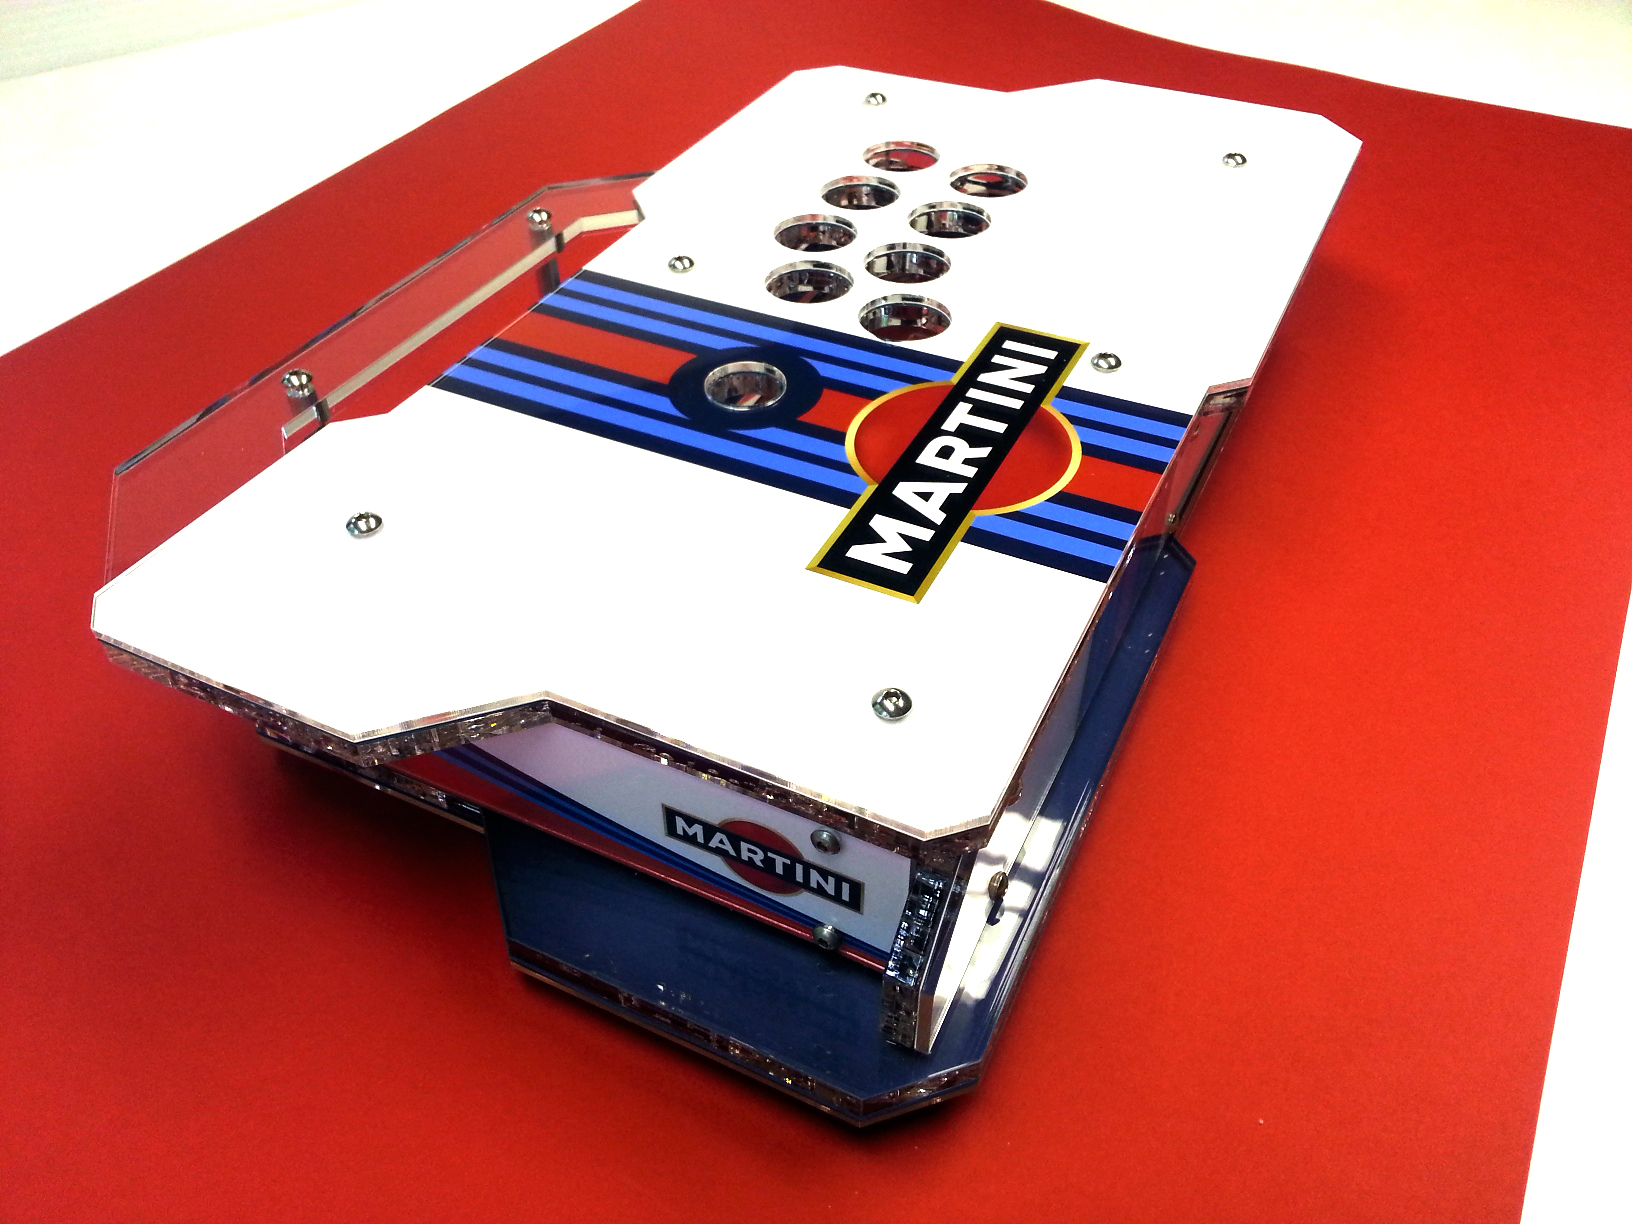 Martini Racing X1 Custom Arcade Stick 1a.jpg